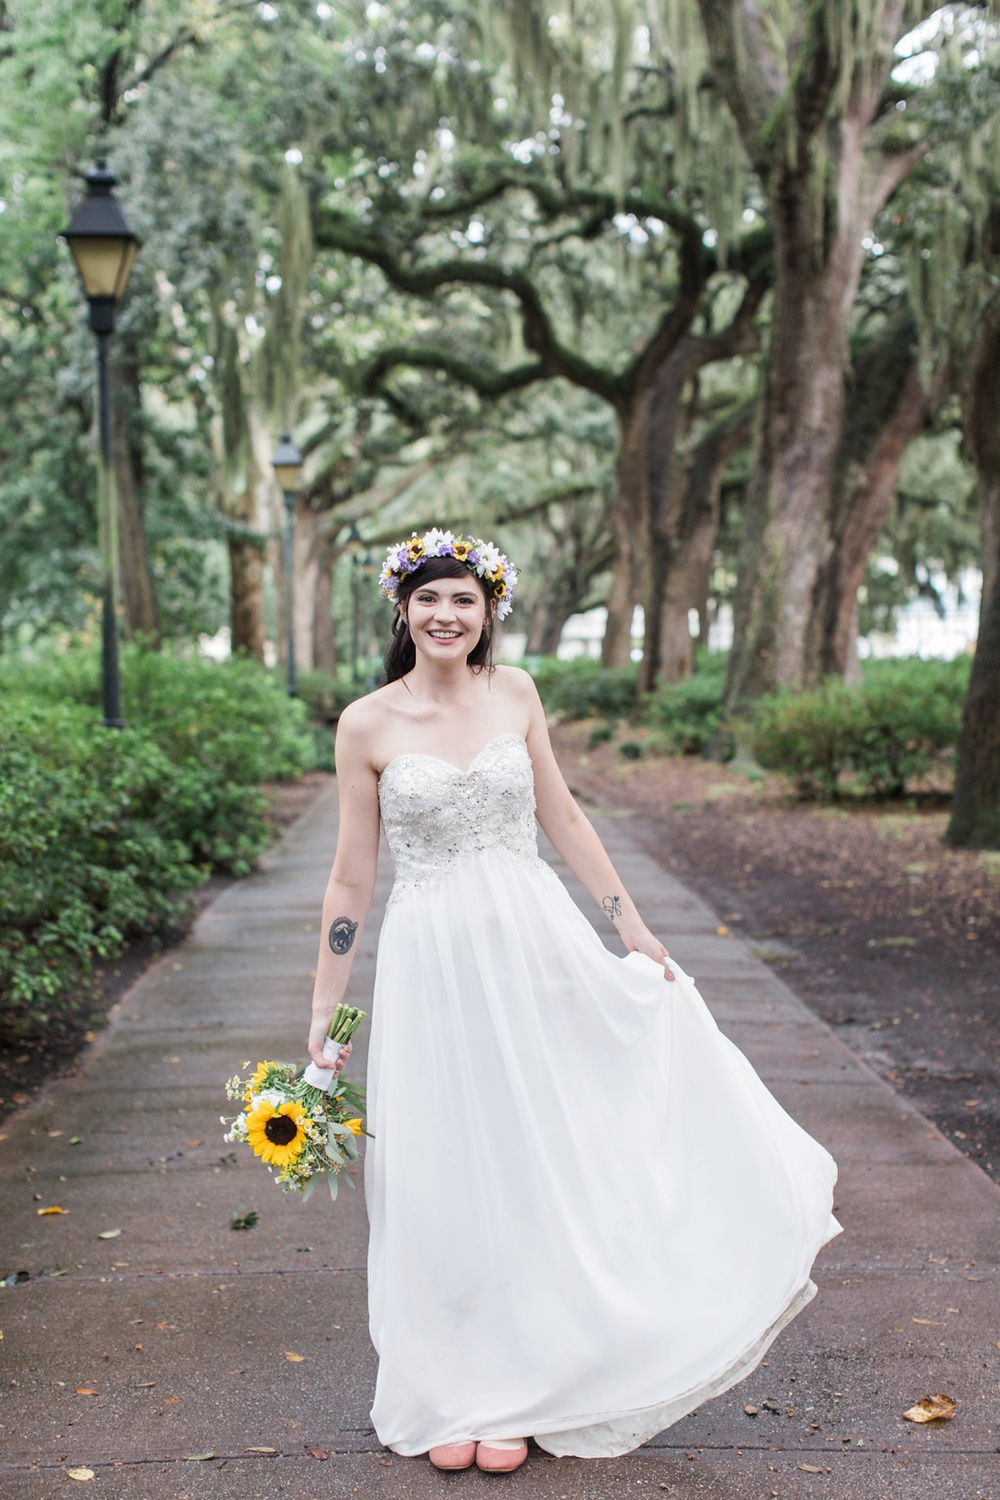 Apt_B_Photo_Savannah_Wedding_Photographer_Flower_Crown044.JPG